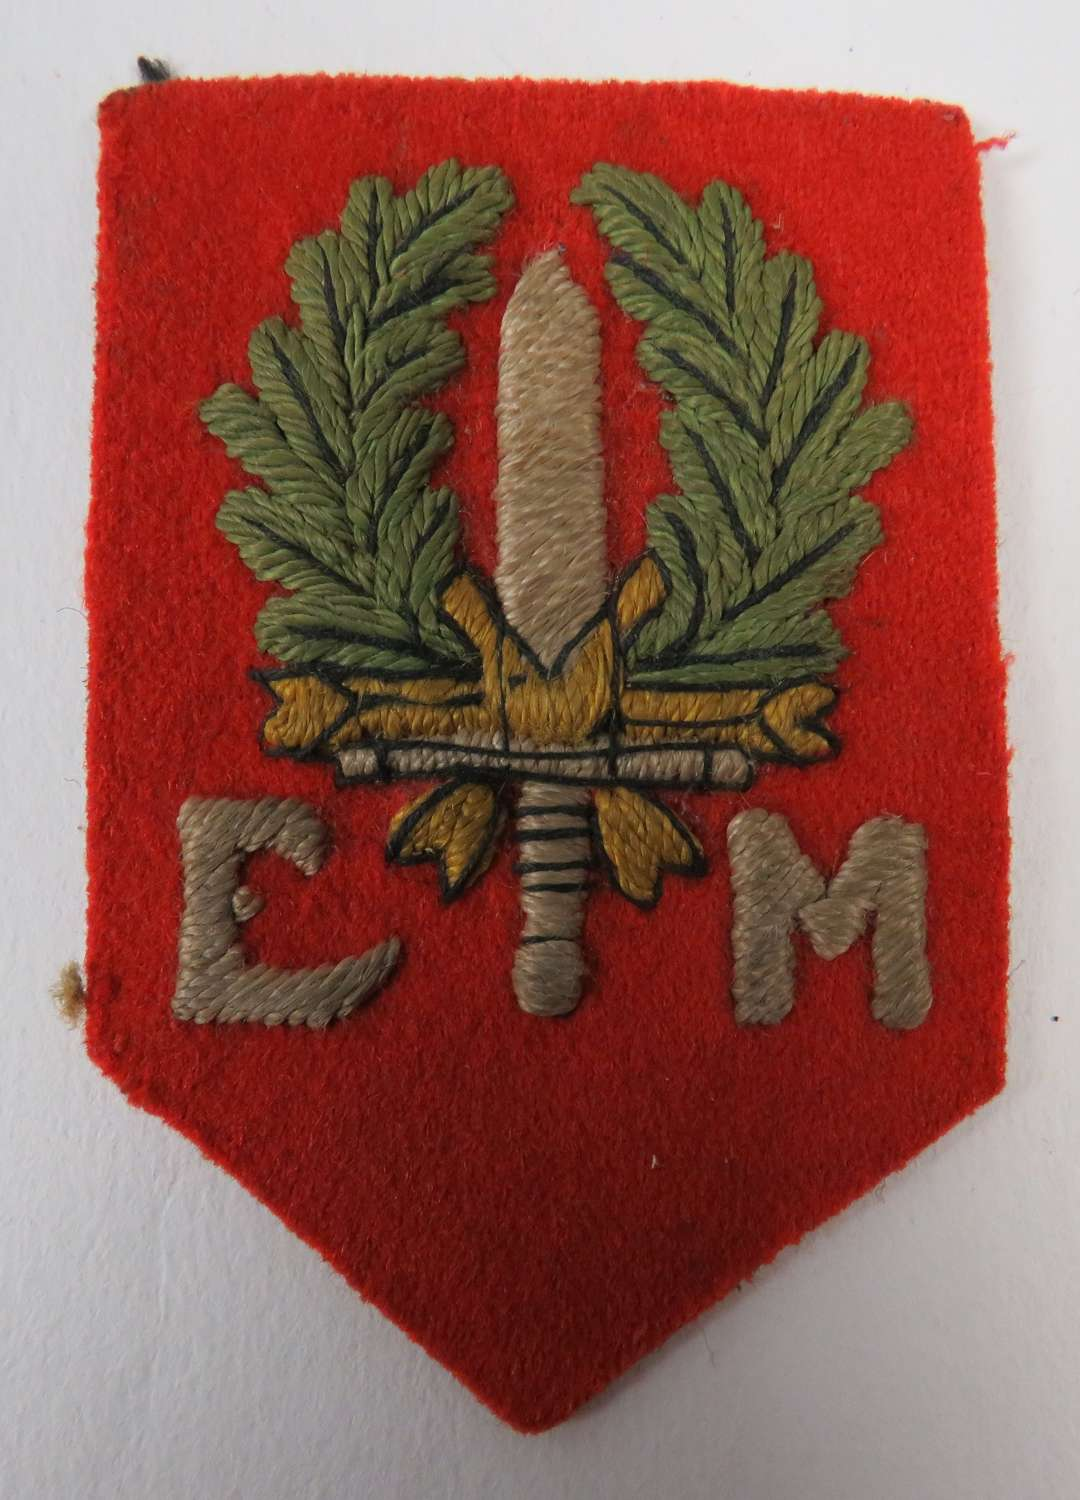 WW2 Dutch 1st Netherlands Division Formation Badge